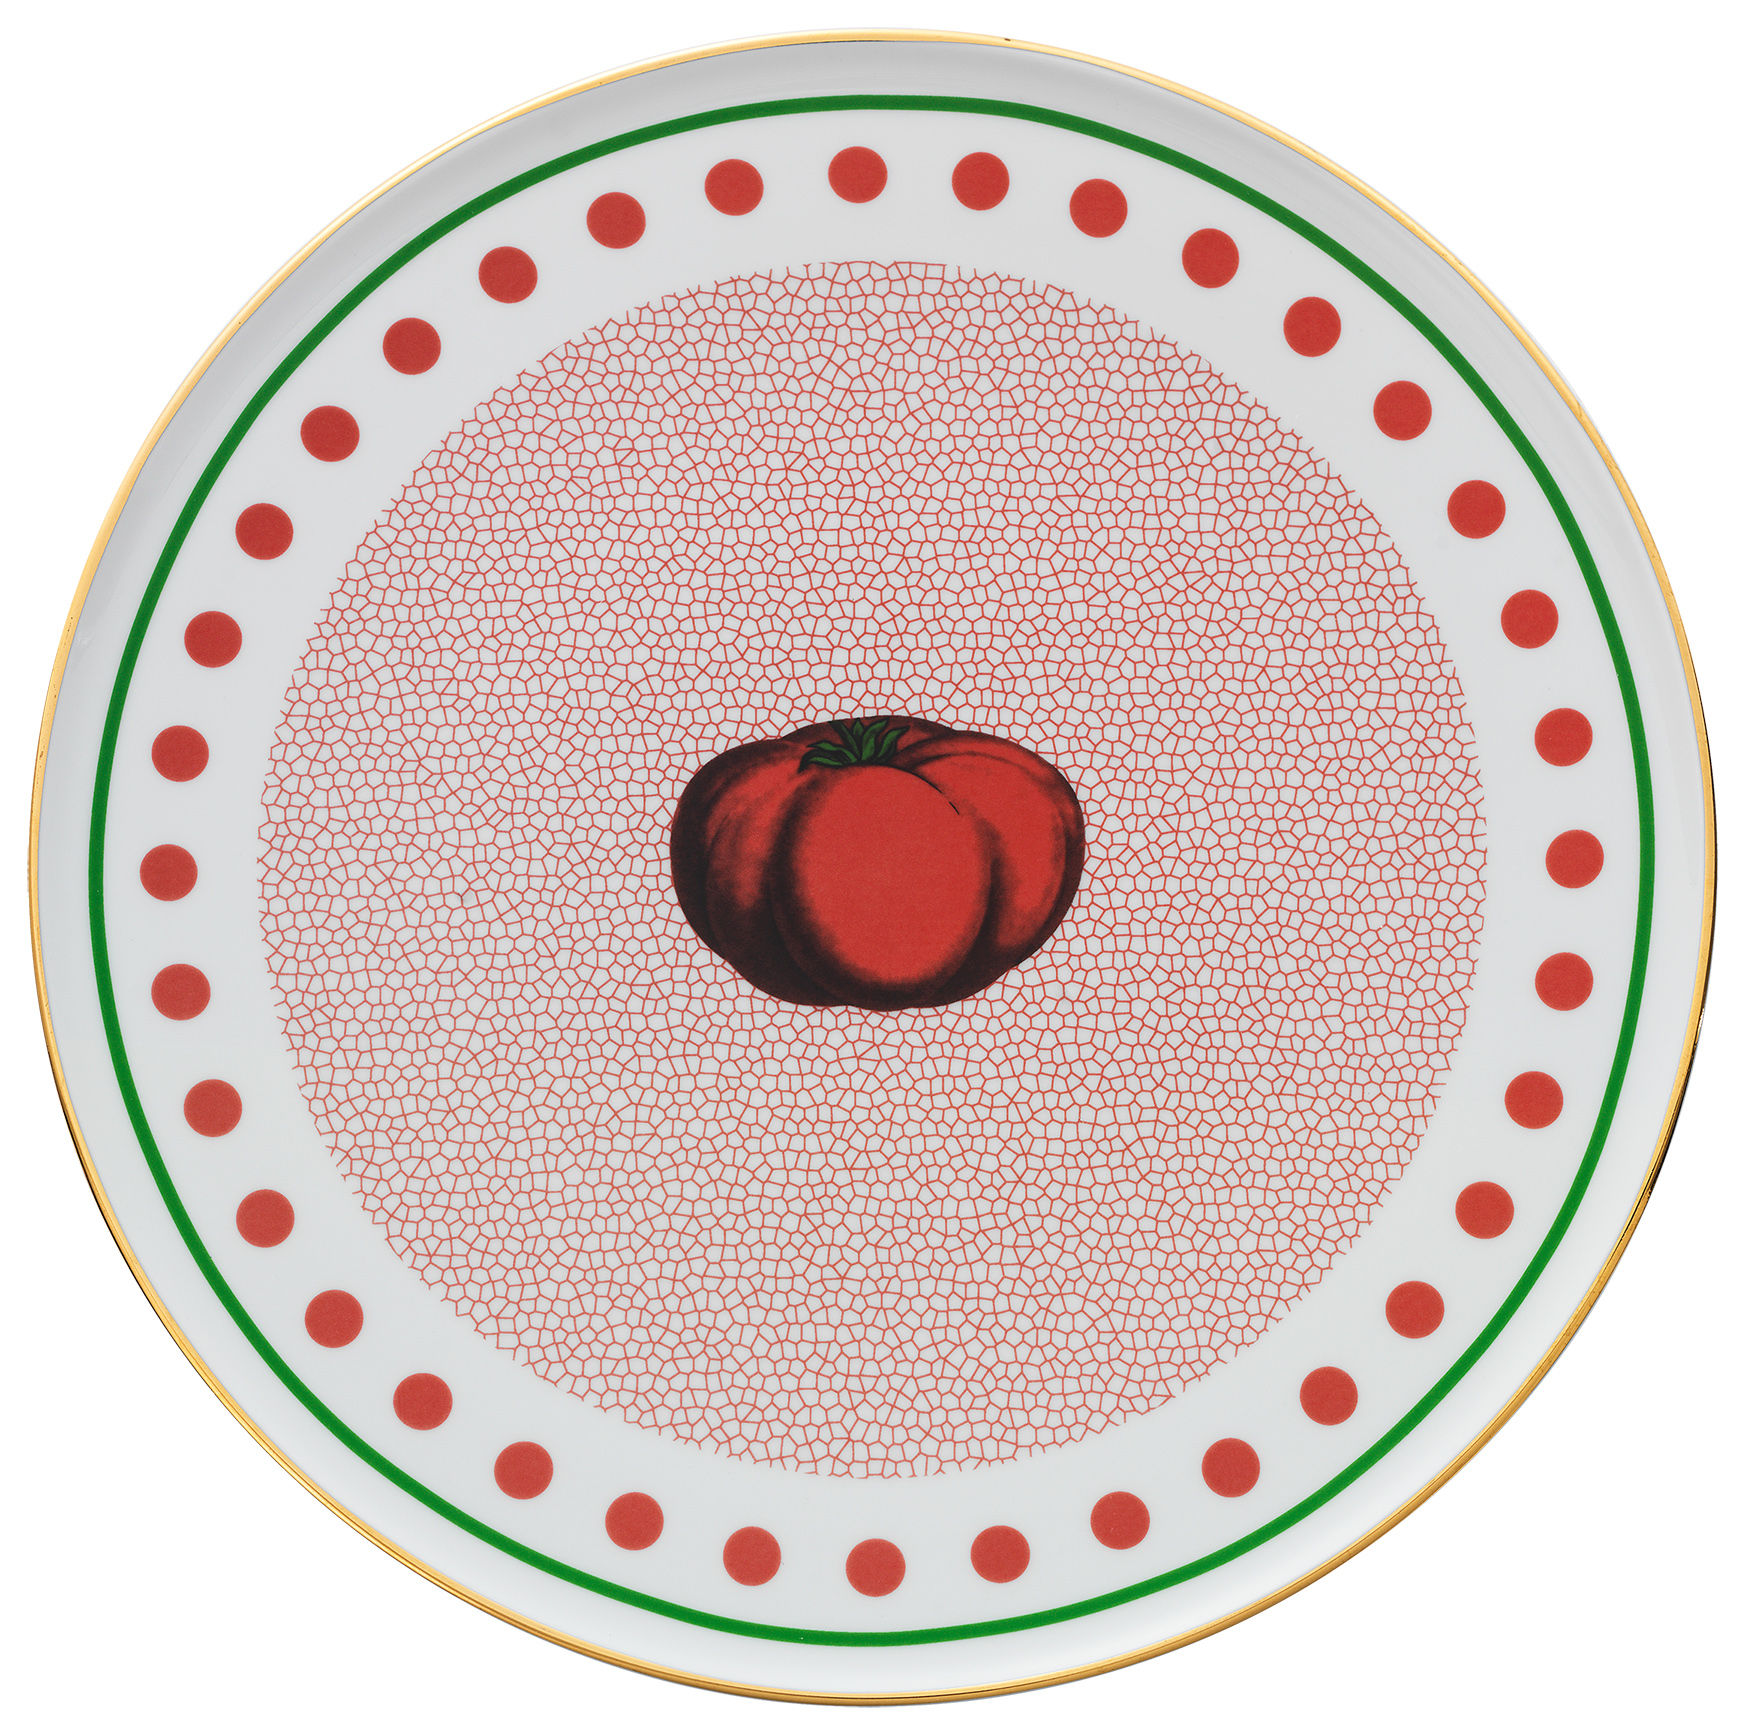 Tableware - Plates - Bel Paese - Pomodoro Presentation plate - / Ø 32 cm by Bitossi Home - Tomato / Red - China